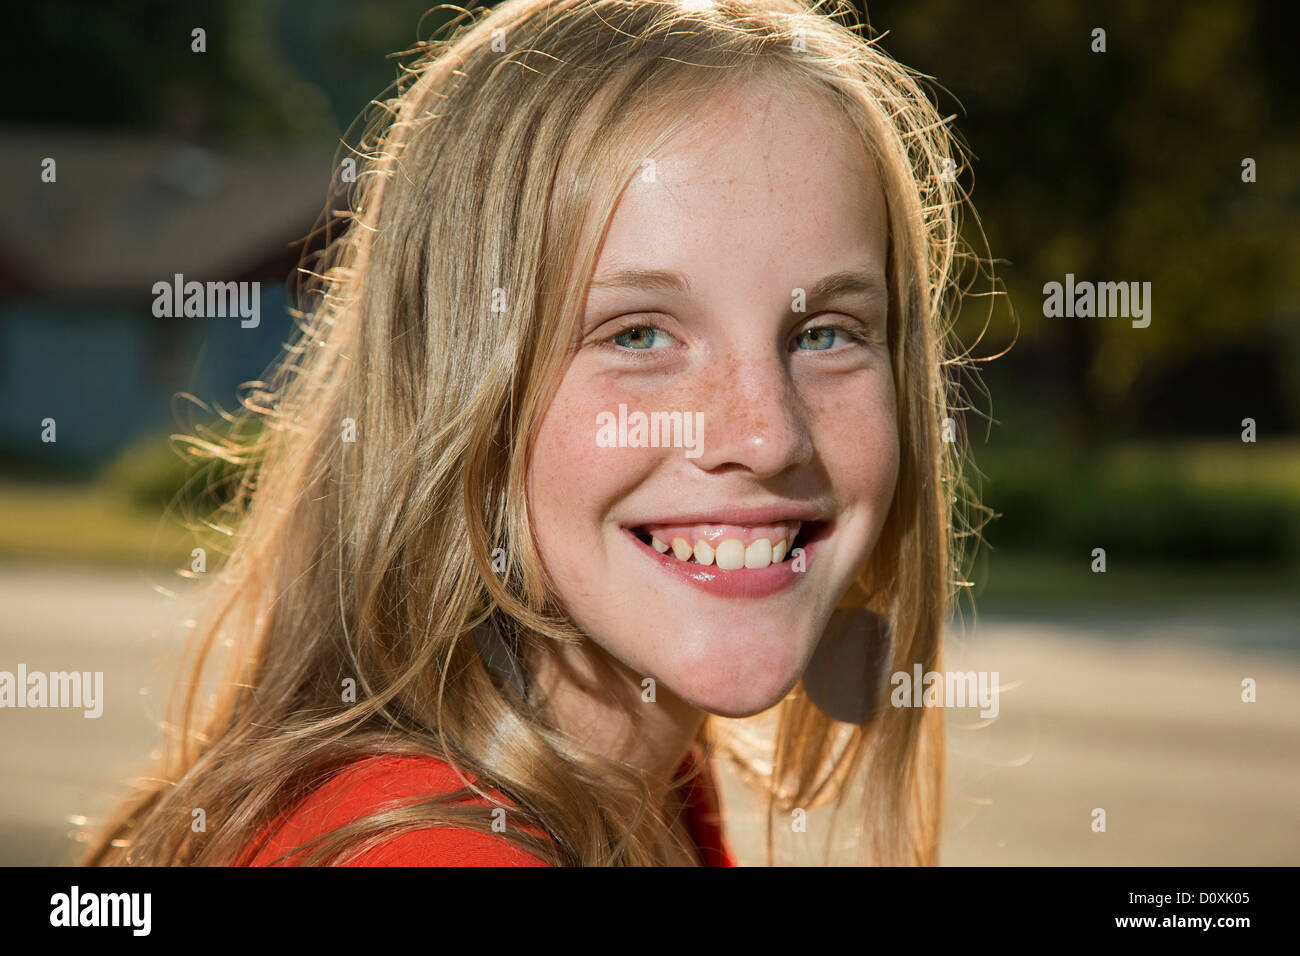 Close up portrait of blonde girl looking at camera smiling - Stock Image